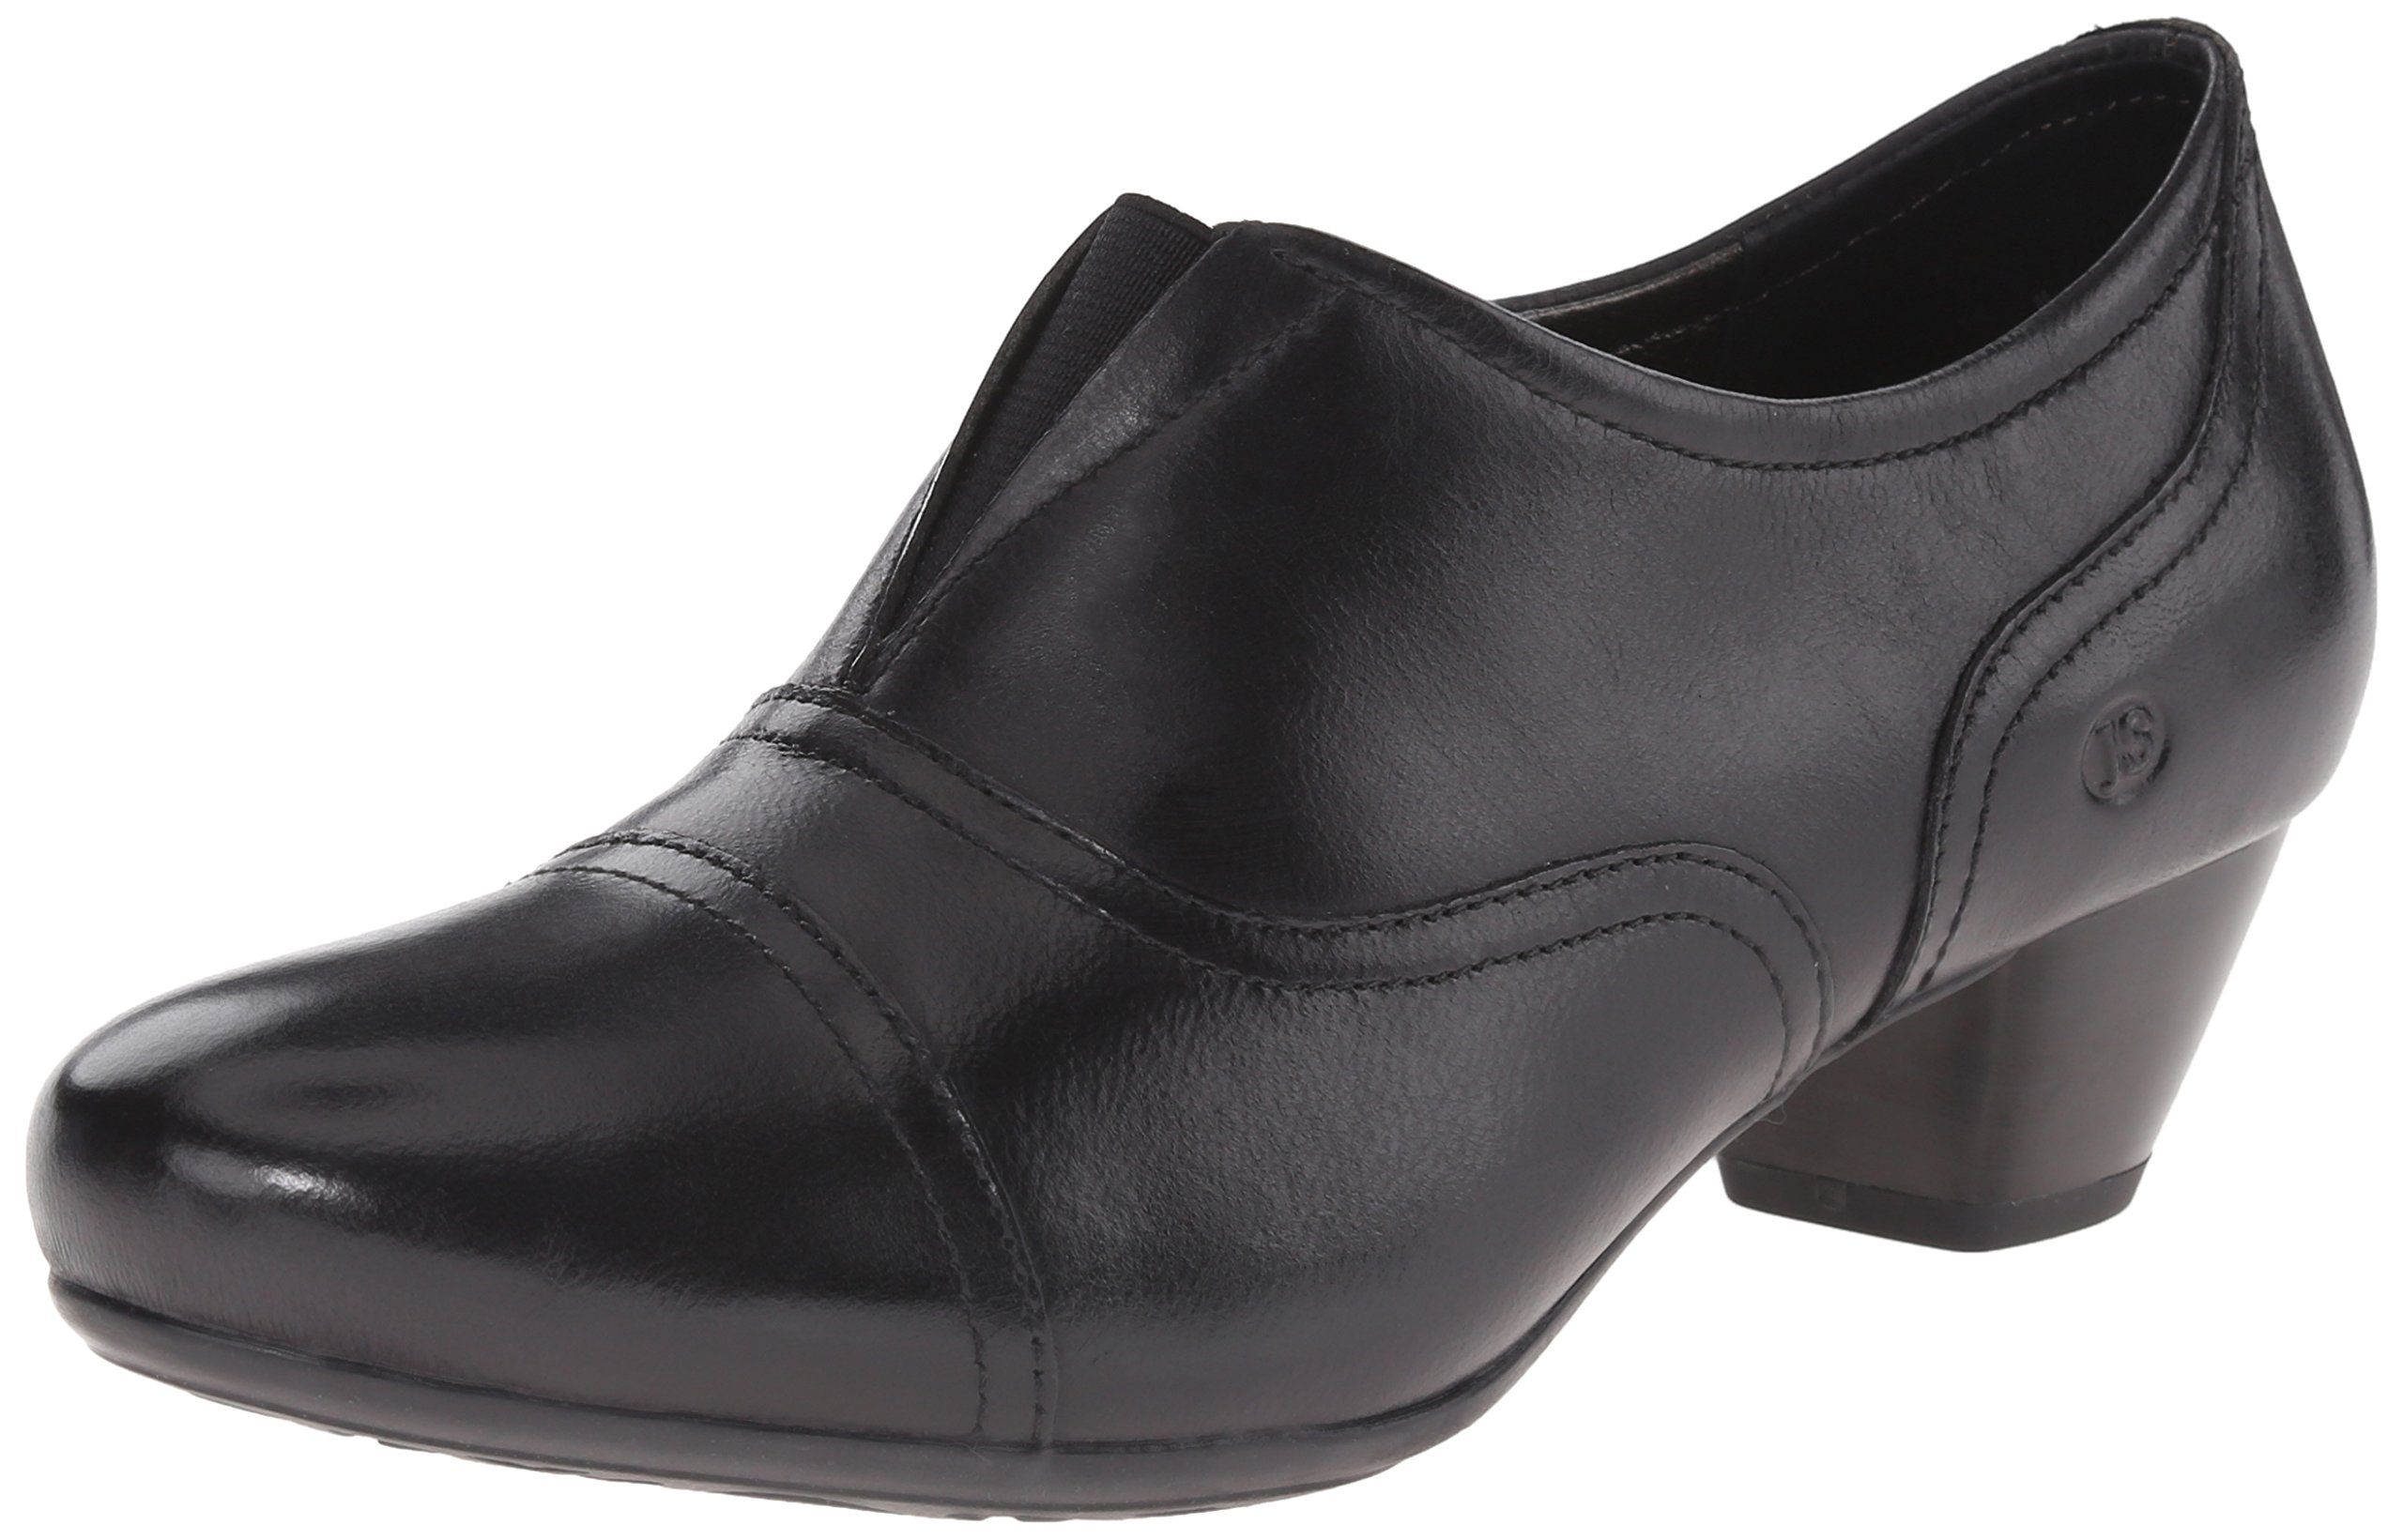 Josef Seibel Women's Amy 35 Dress Pump, Black, 40 BR/9-9.5 M US. Premium full grain leather. Flexible outsole with stacked heel. Stitched upper for stylish detail. Light weight for all day comfort. European comfort and style.